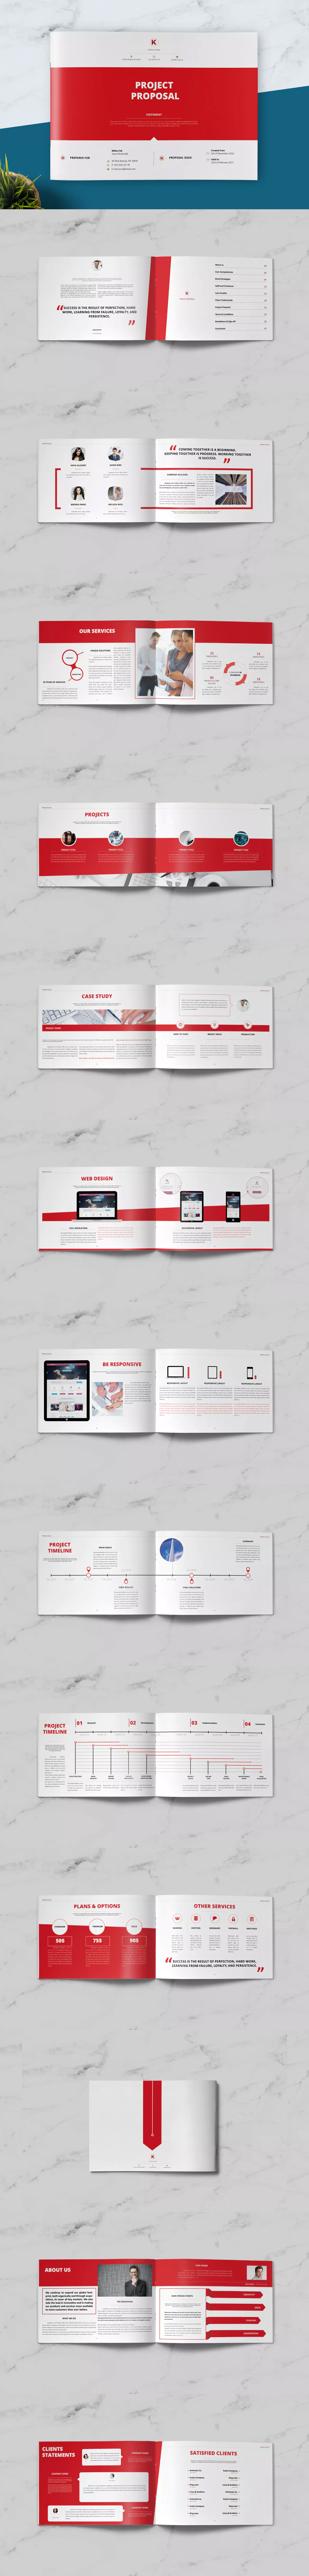 Project Proposal Brochure Template InDesign INDD A4 and Letter size ...